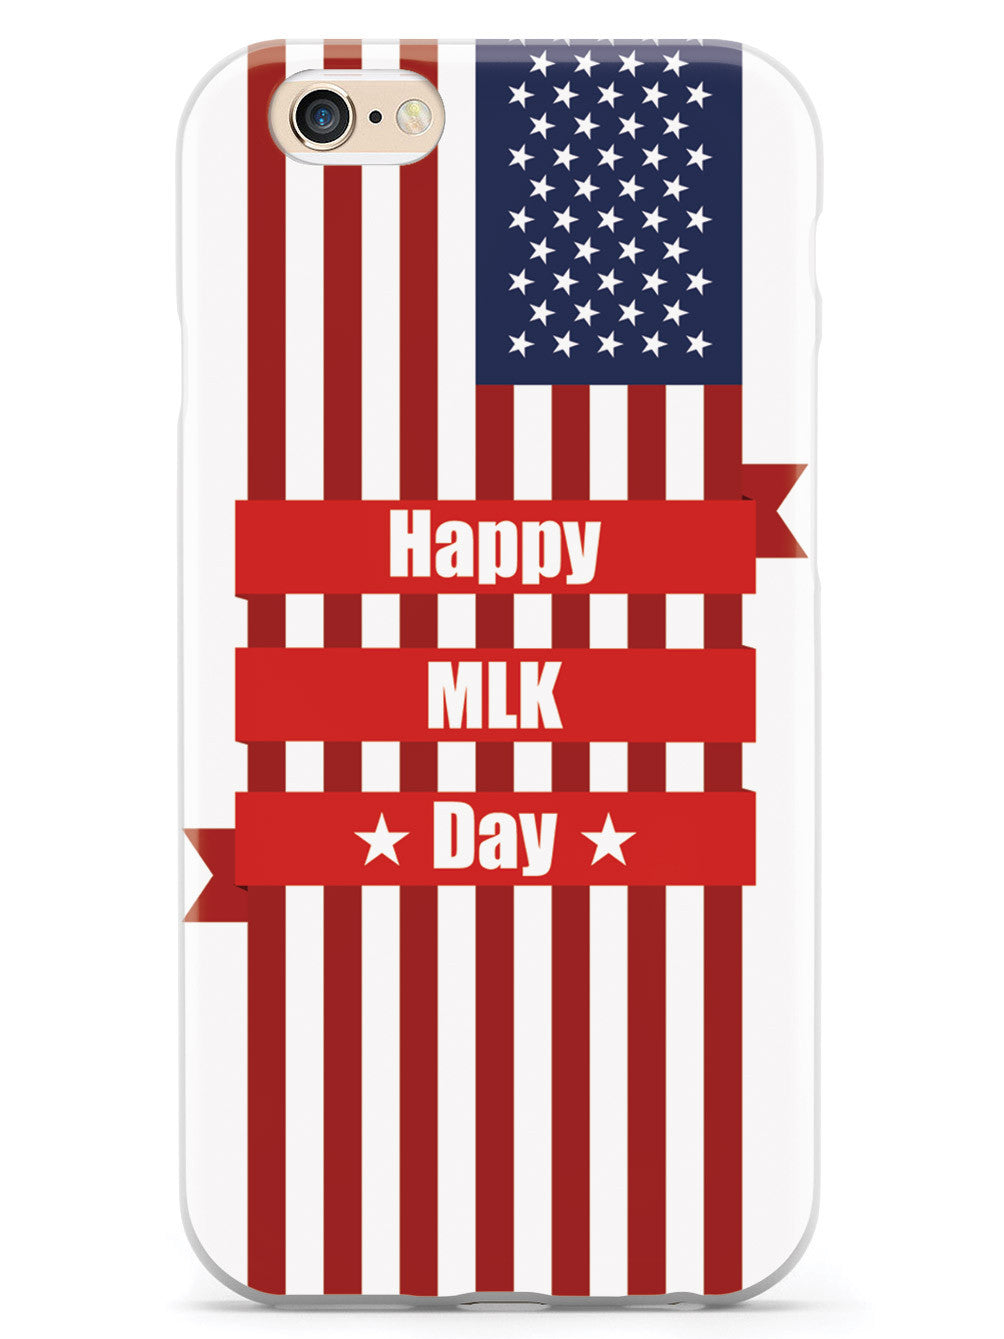 Happy MLK Day - American Flag - White Case